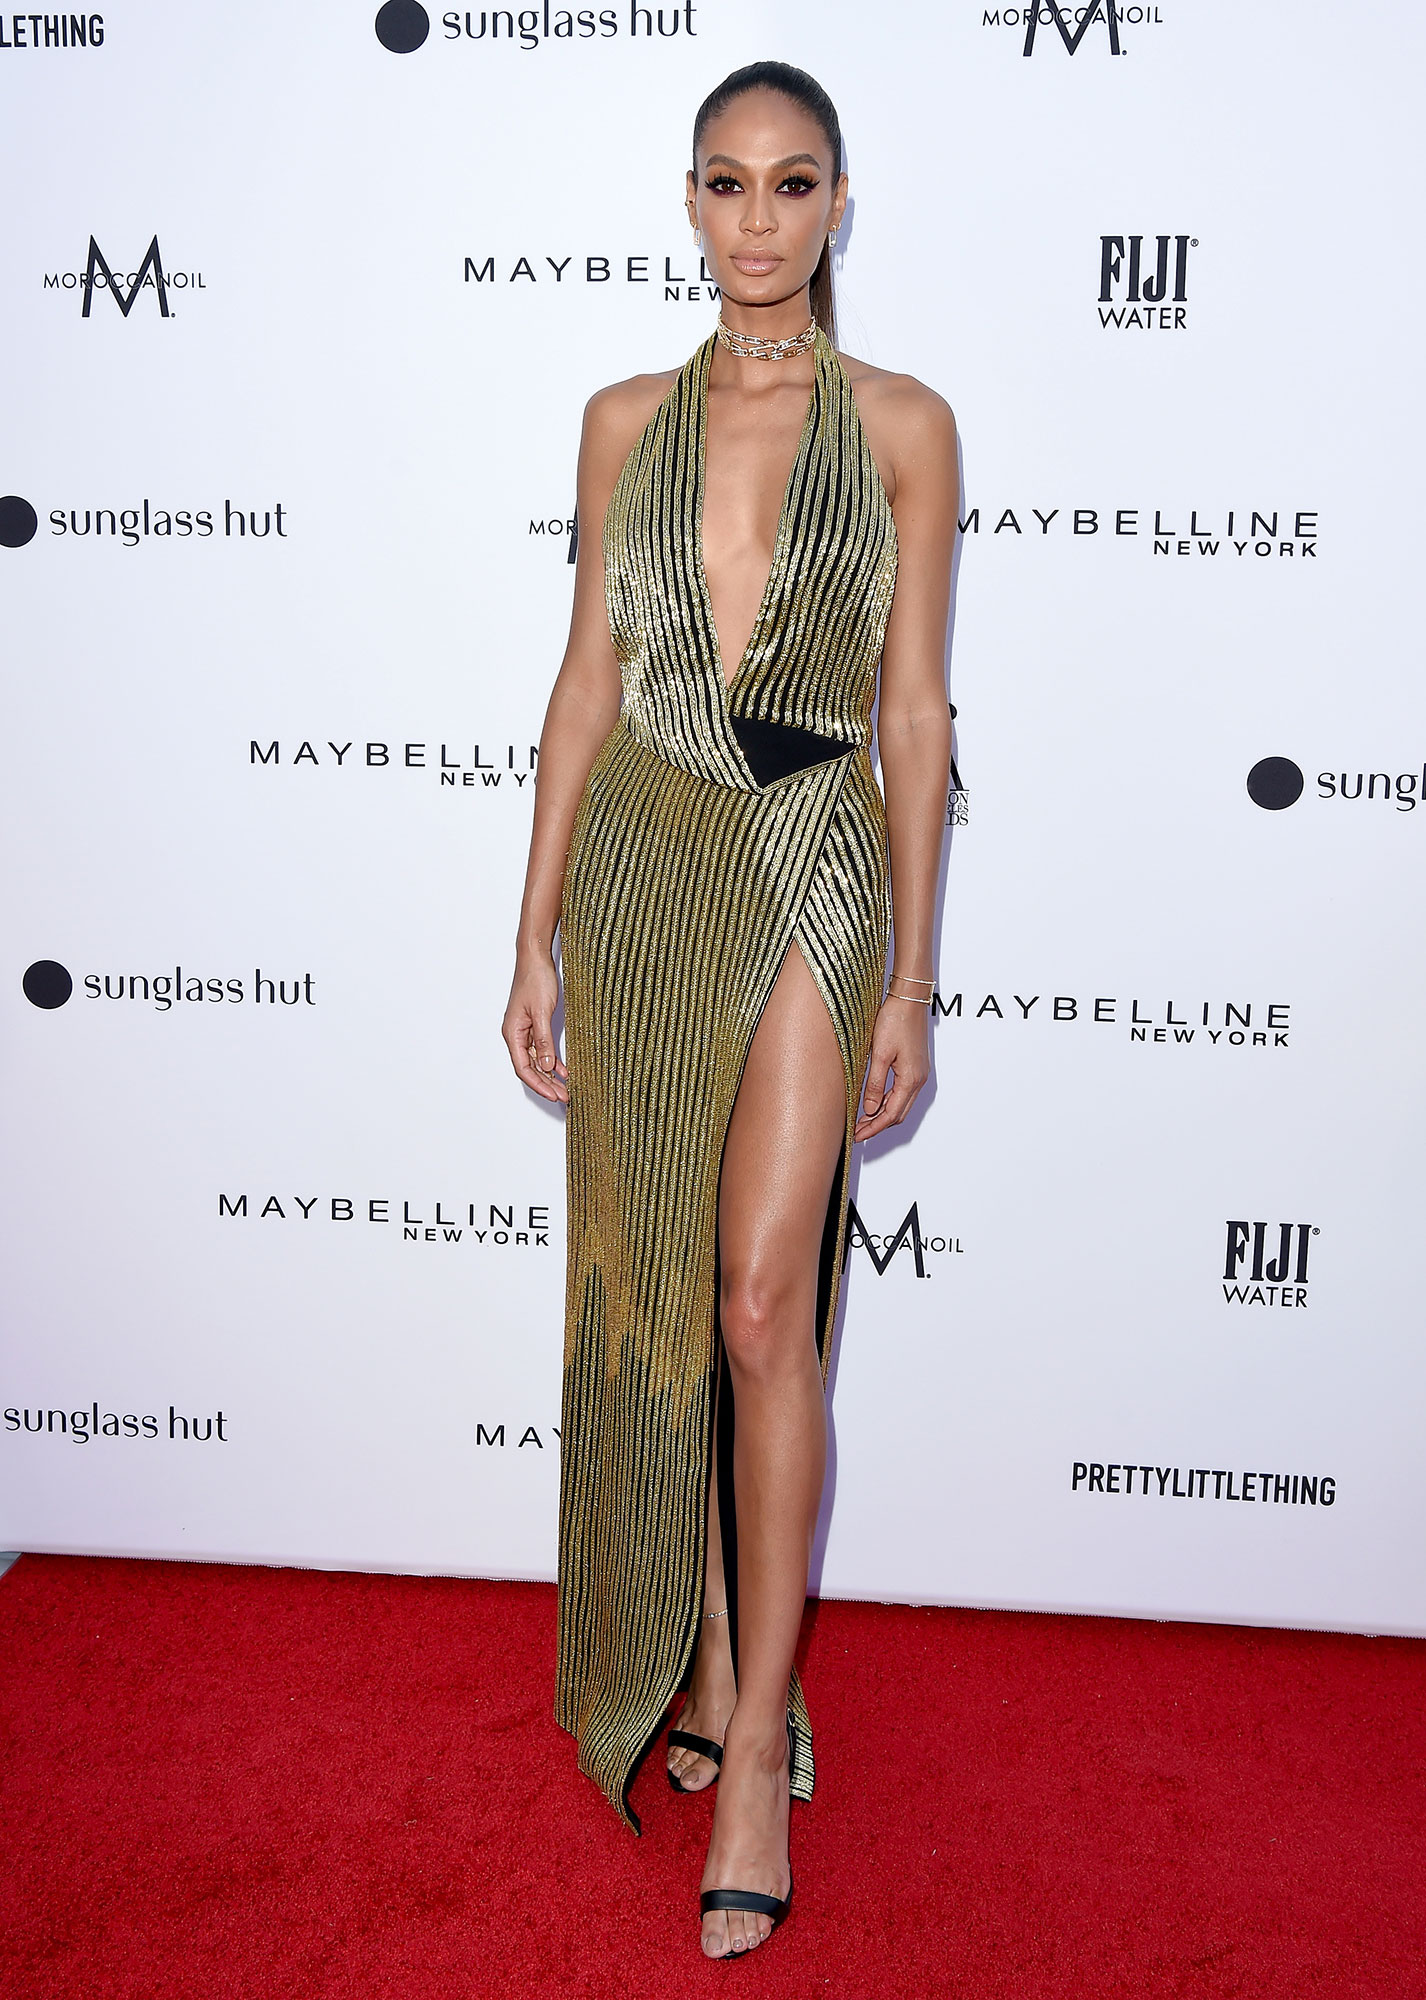 Stars Brought Their Style A-Game to the Daily Front Row Fashion Awards - Embracing the high-slit and deep neckline, the Victoria Secret model look was sensually elegant.